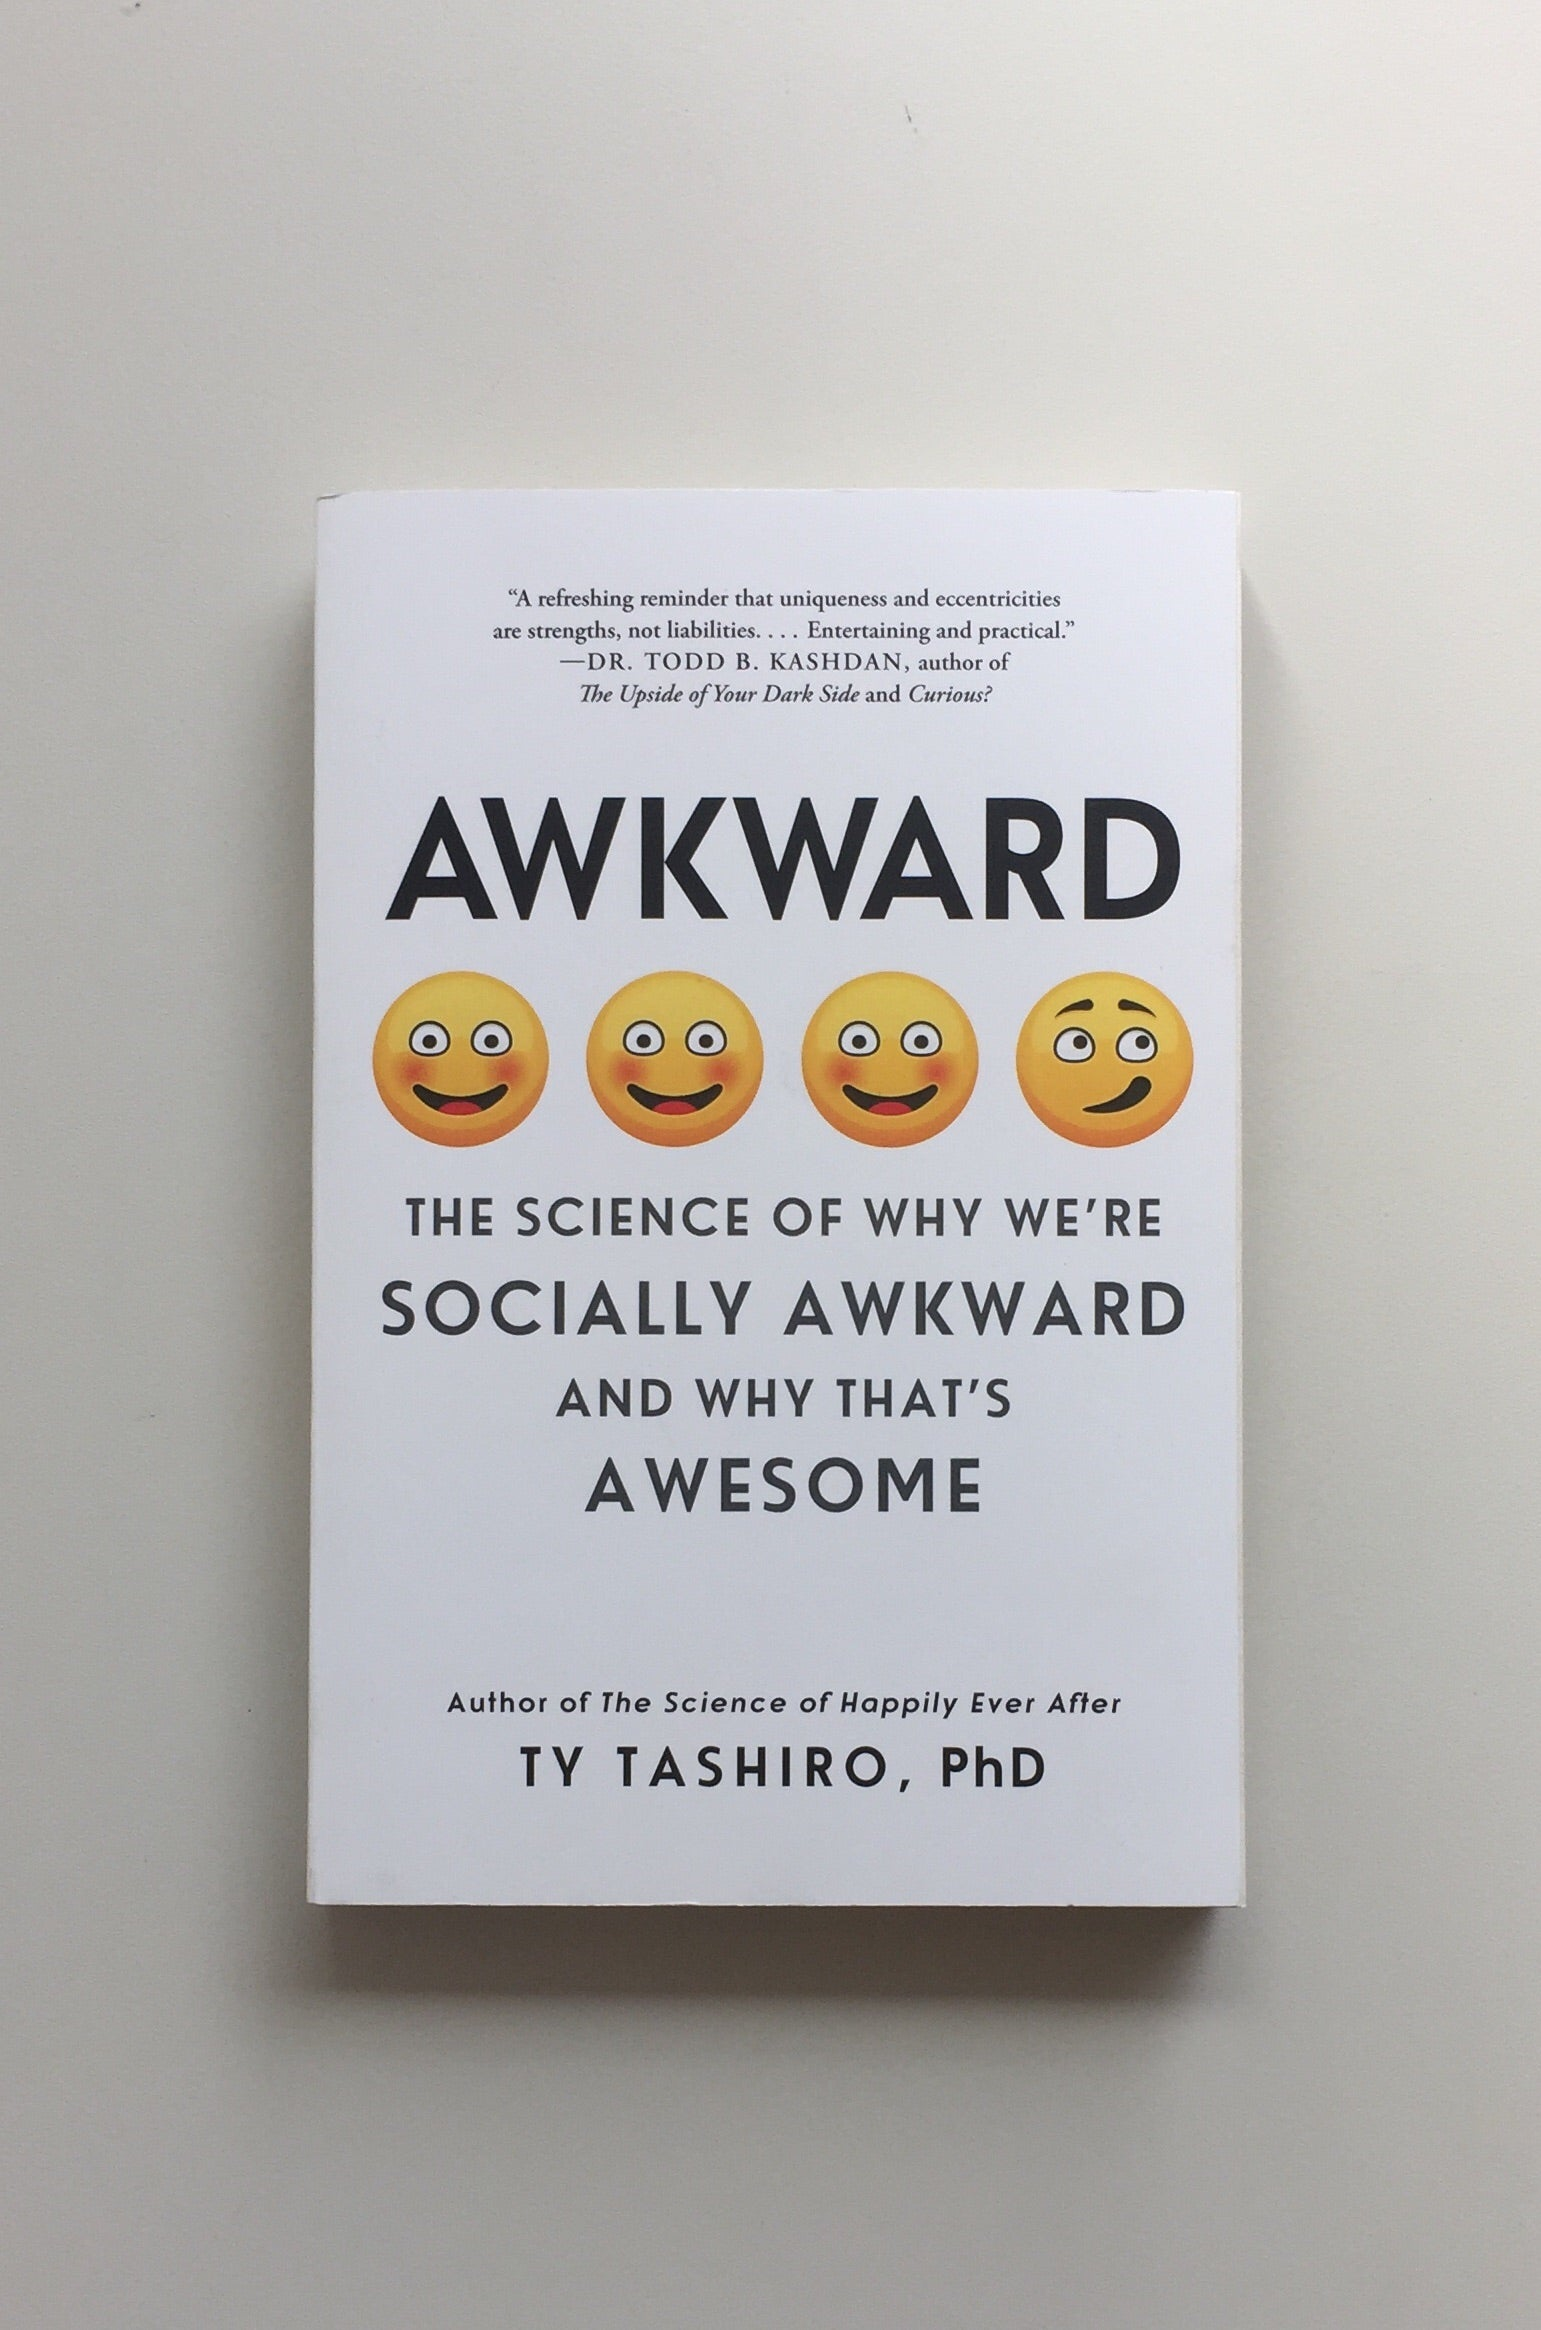 Awkward: The Science of Why We're Socially Awkward and Why That's Awesome by Ty Tashiro